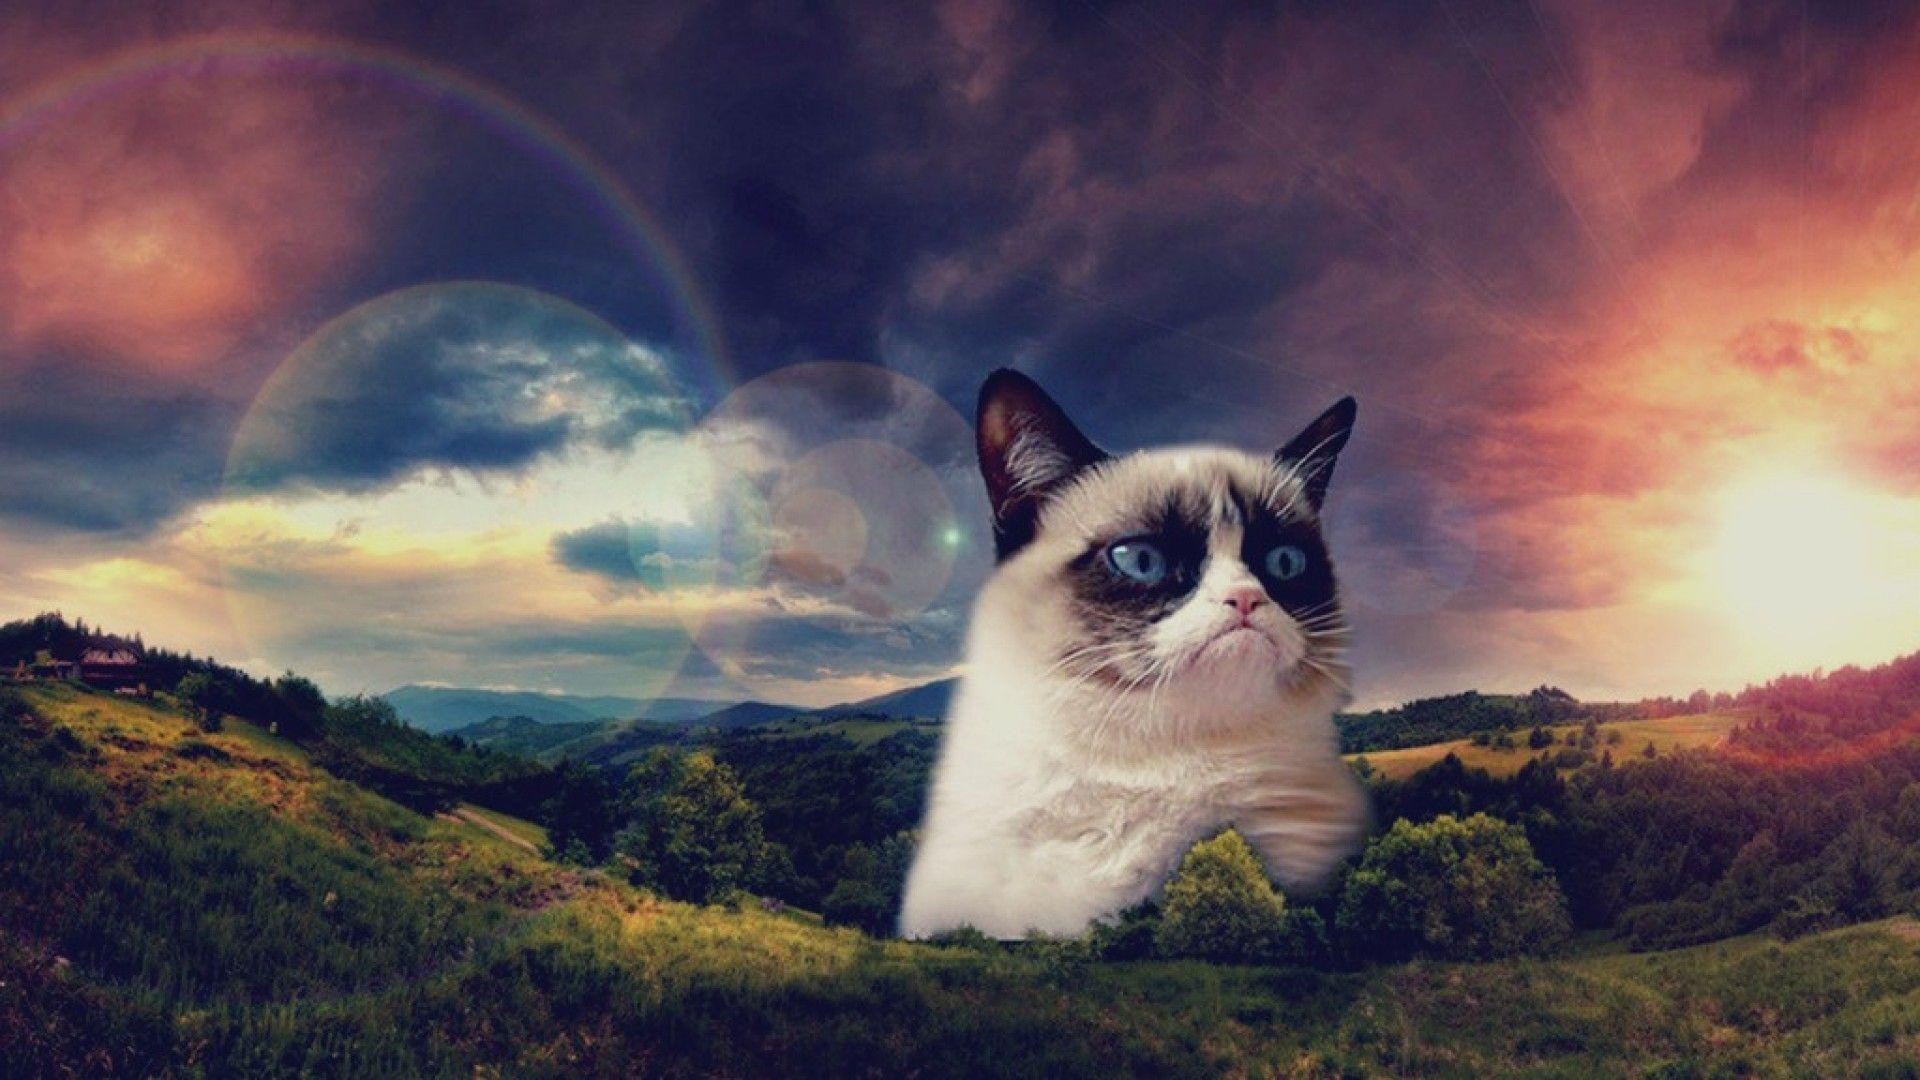 grumpy cat hd wallpapers - photo #3